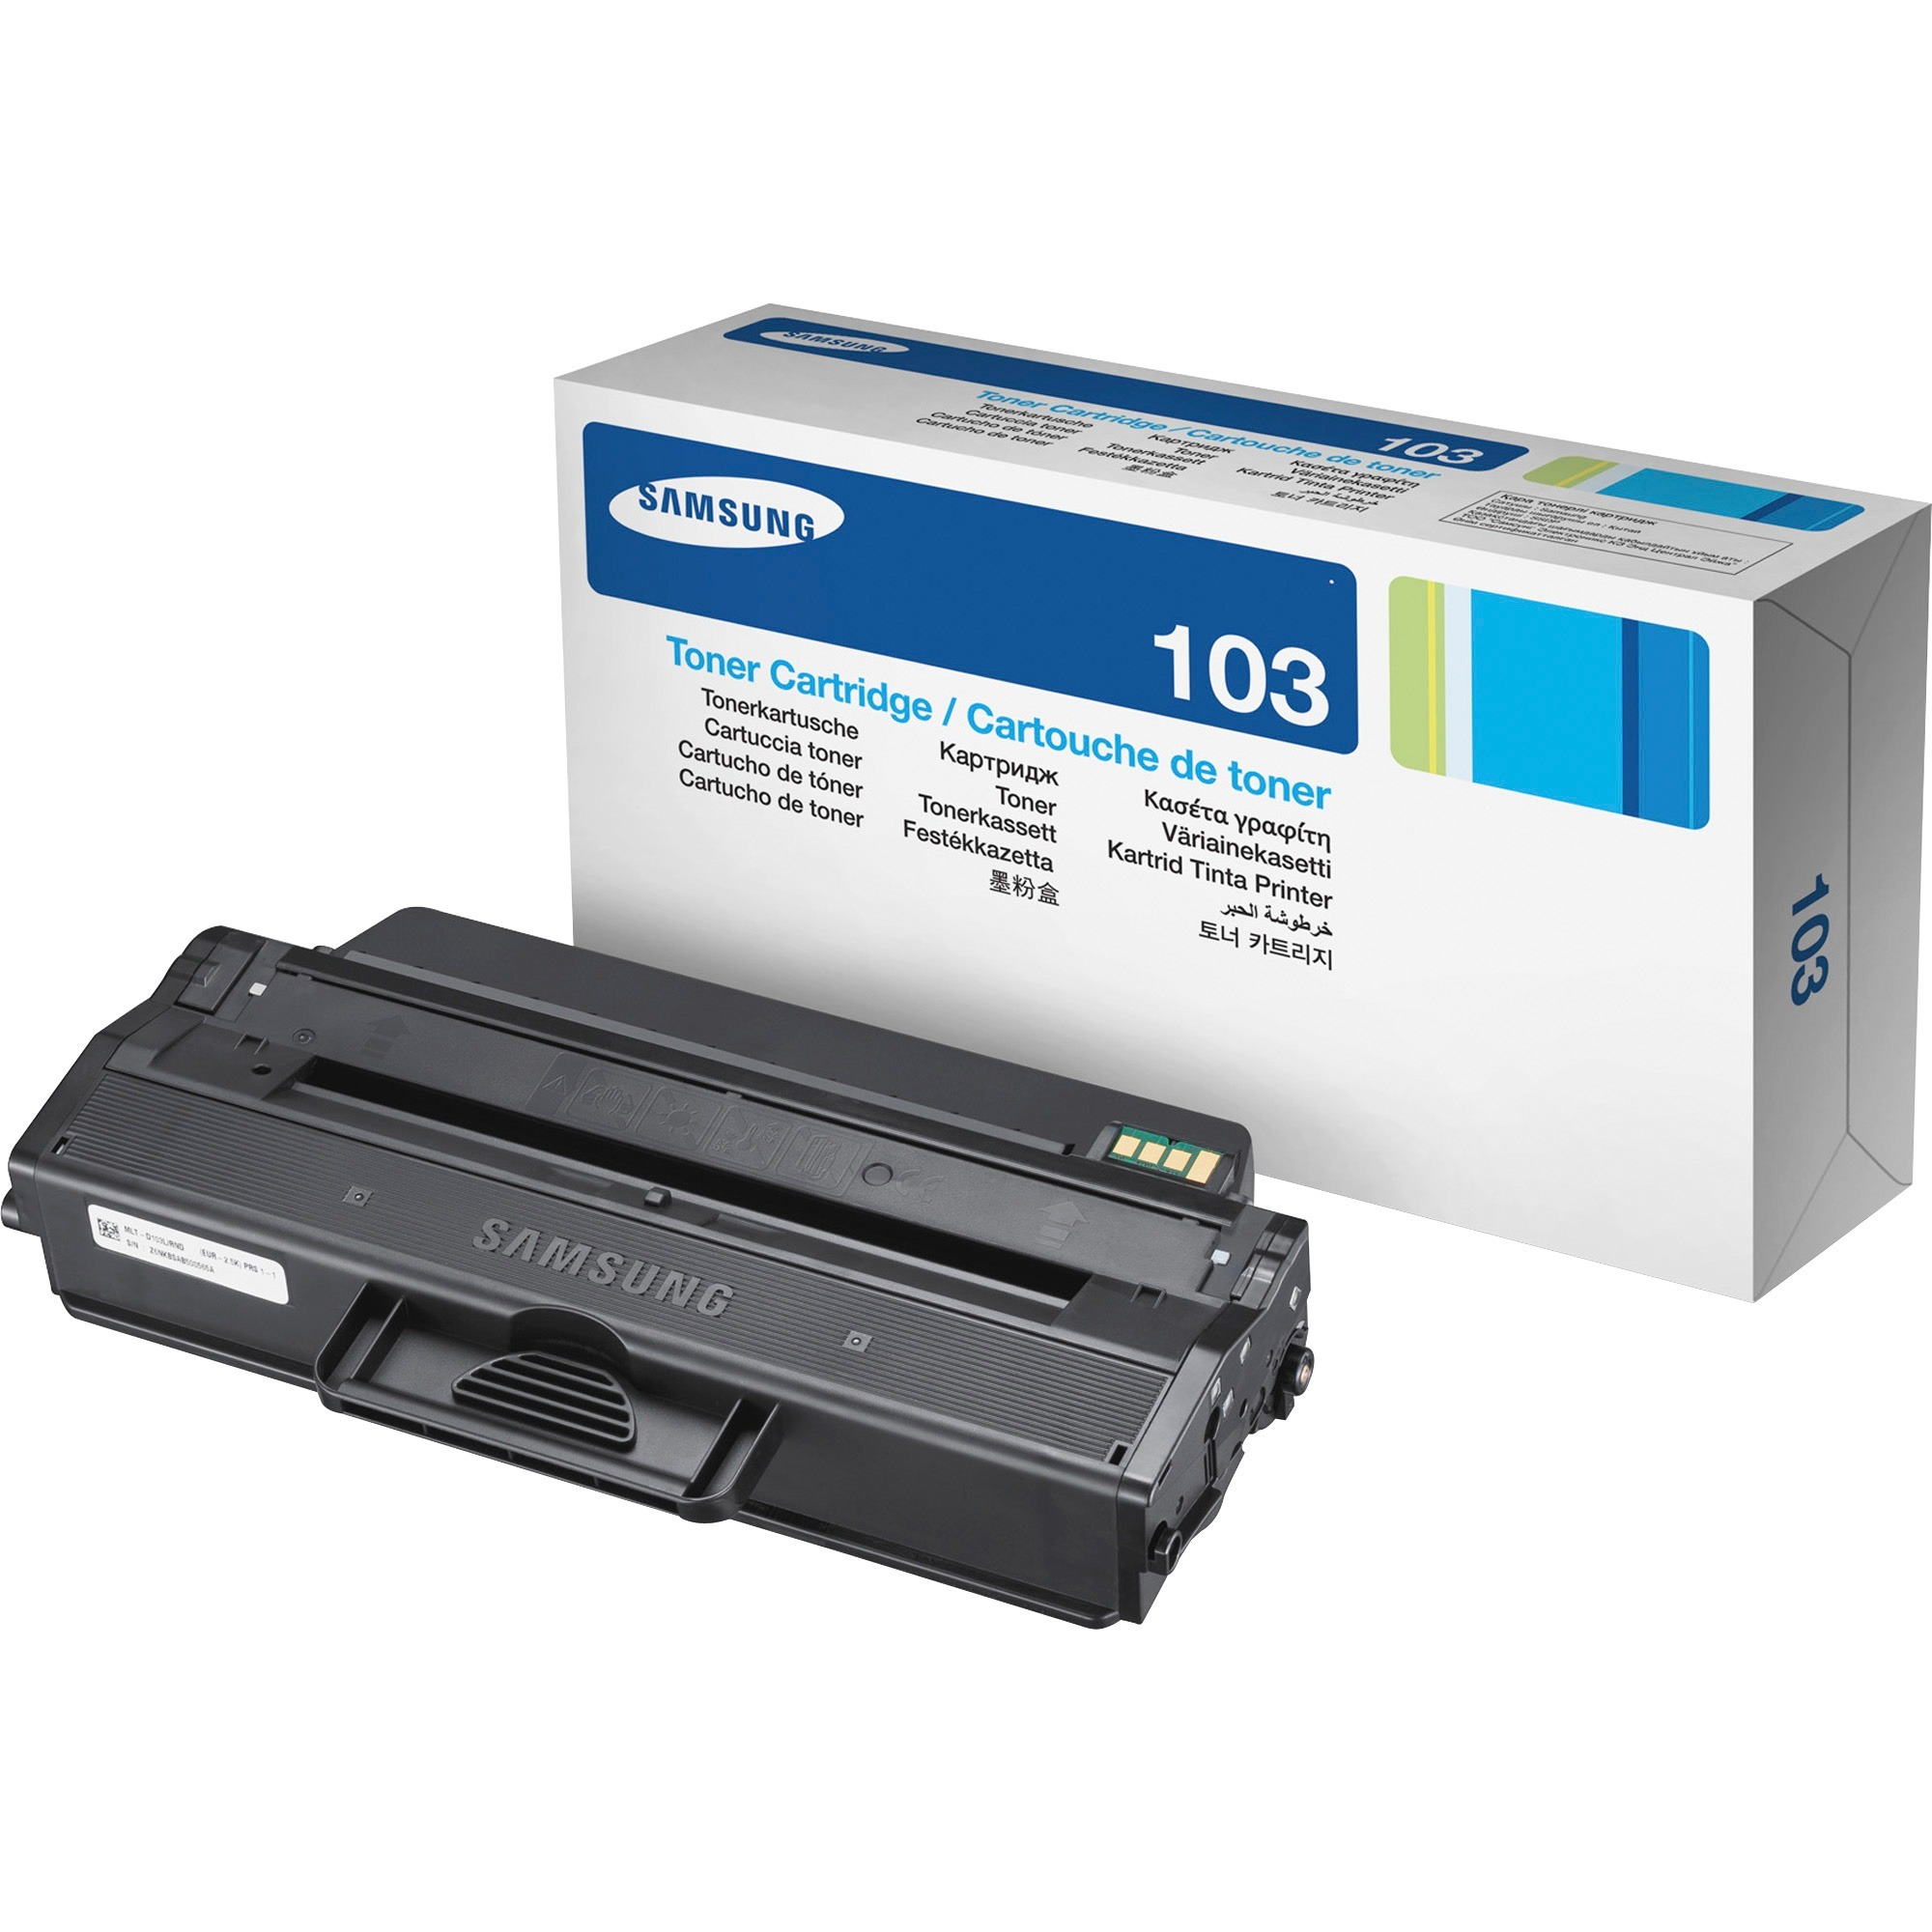 Hunter Paper Products Search Tinta Cartridge Hp 45 Black Original Mlt D103s Toner Alternative For Samsung Xaa Laser 1500 Pages